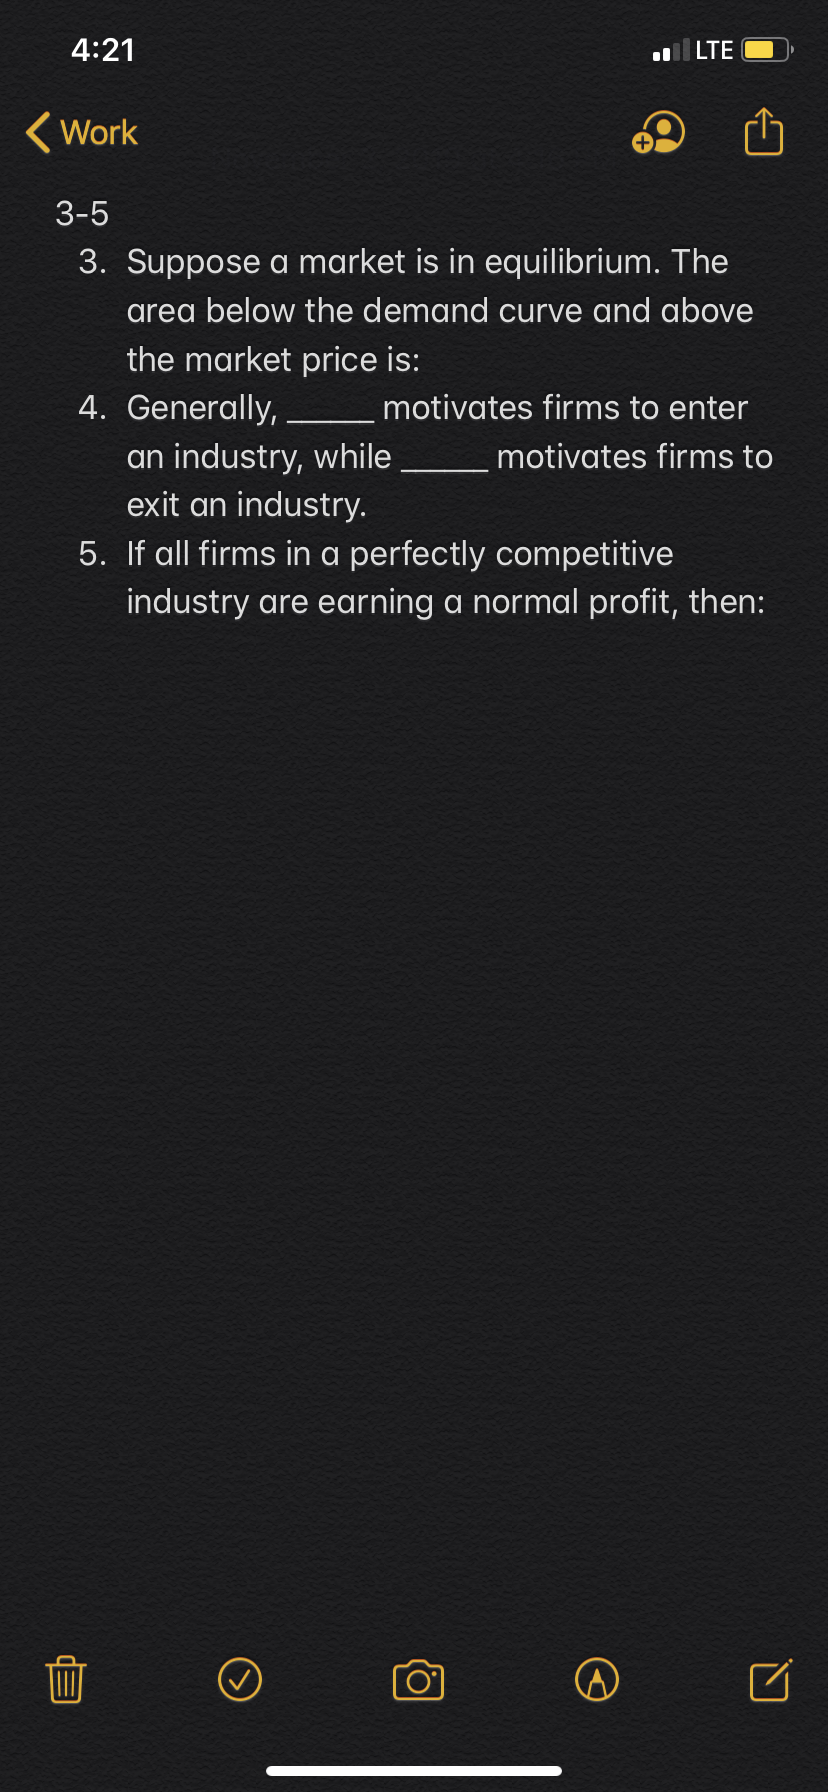 4:21 lLTE Work 3-5 3. Suppose a market is in equilibrium. The area below the demand curve and above the market price is: 4. Generally, motivates firms to enter an industry, while exit an industry. motivates firms to 5. If all firms in a perfectly competitive industry are earning a normal profit, then: